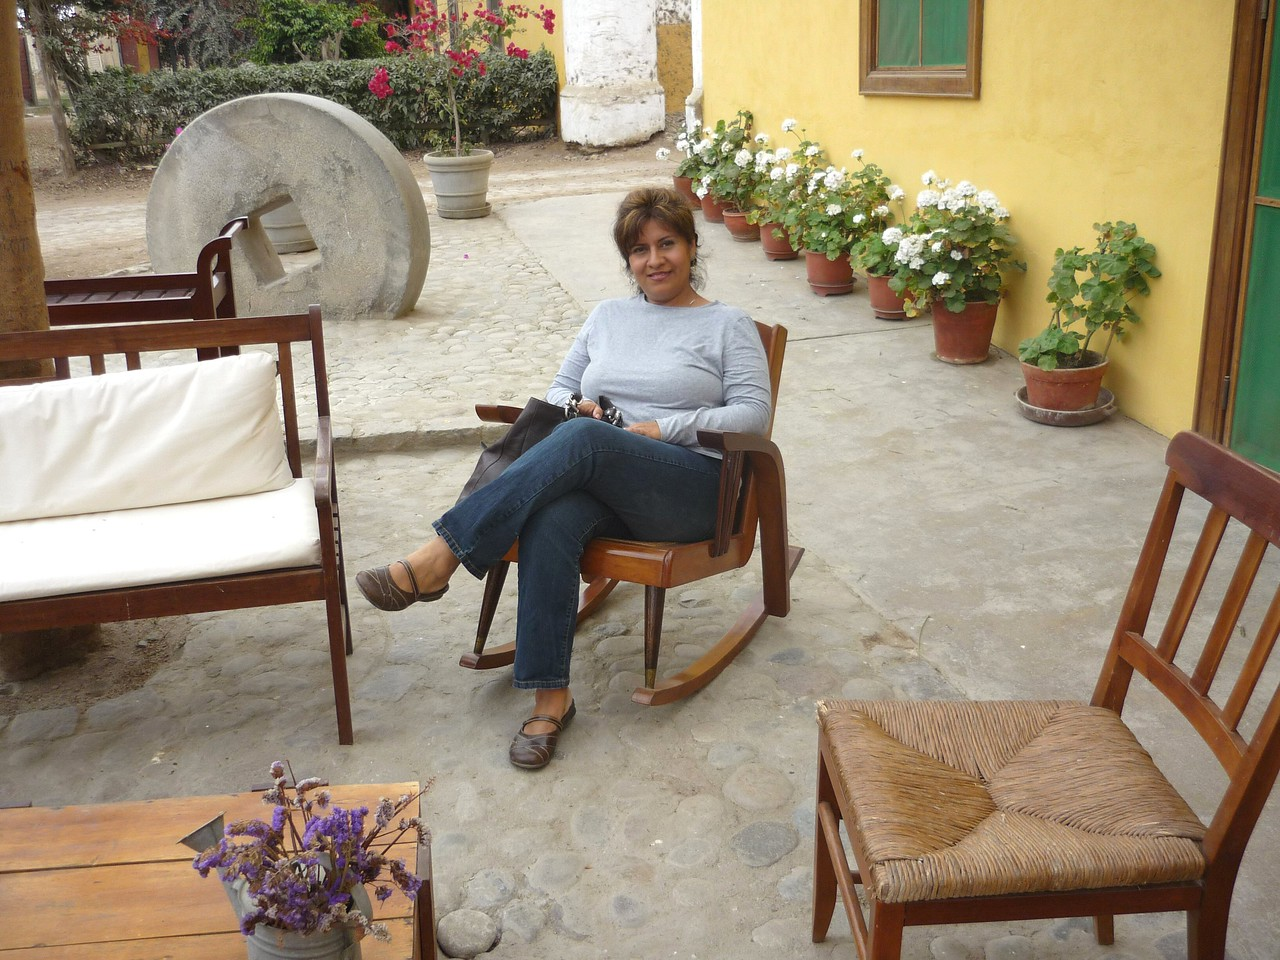 Relaxing after a nice walk through the Hacienda.<br /> Relajandome despues de una caminata por la hacienda.